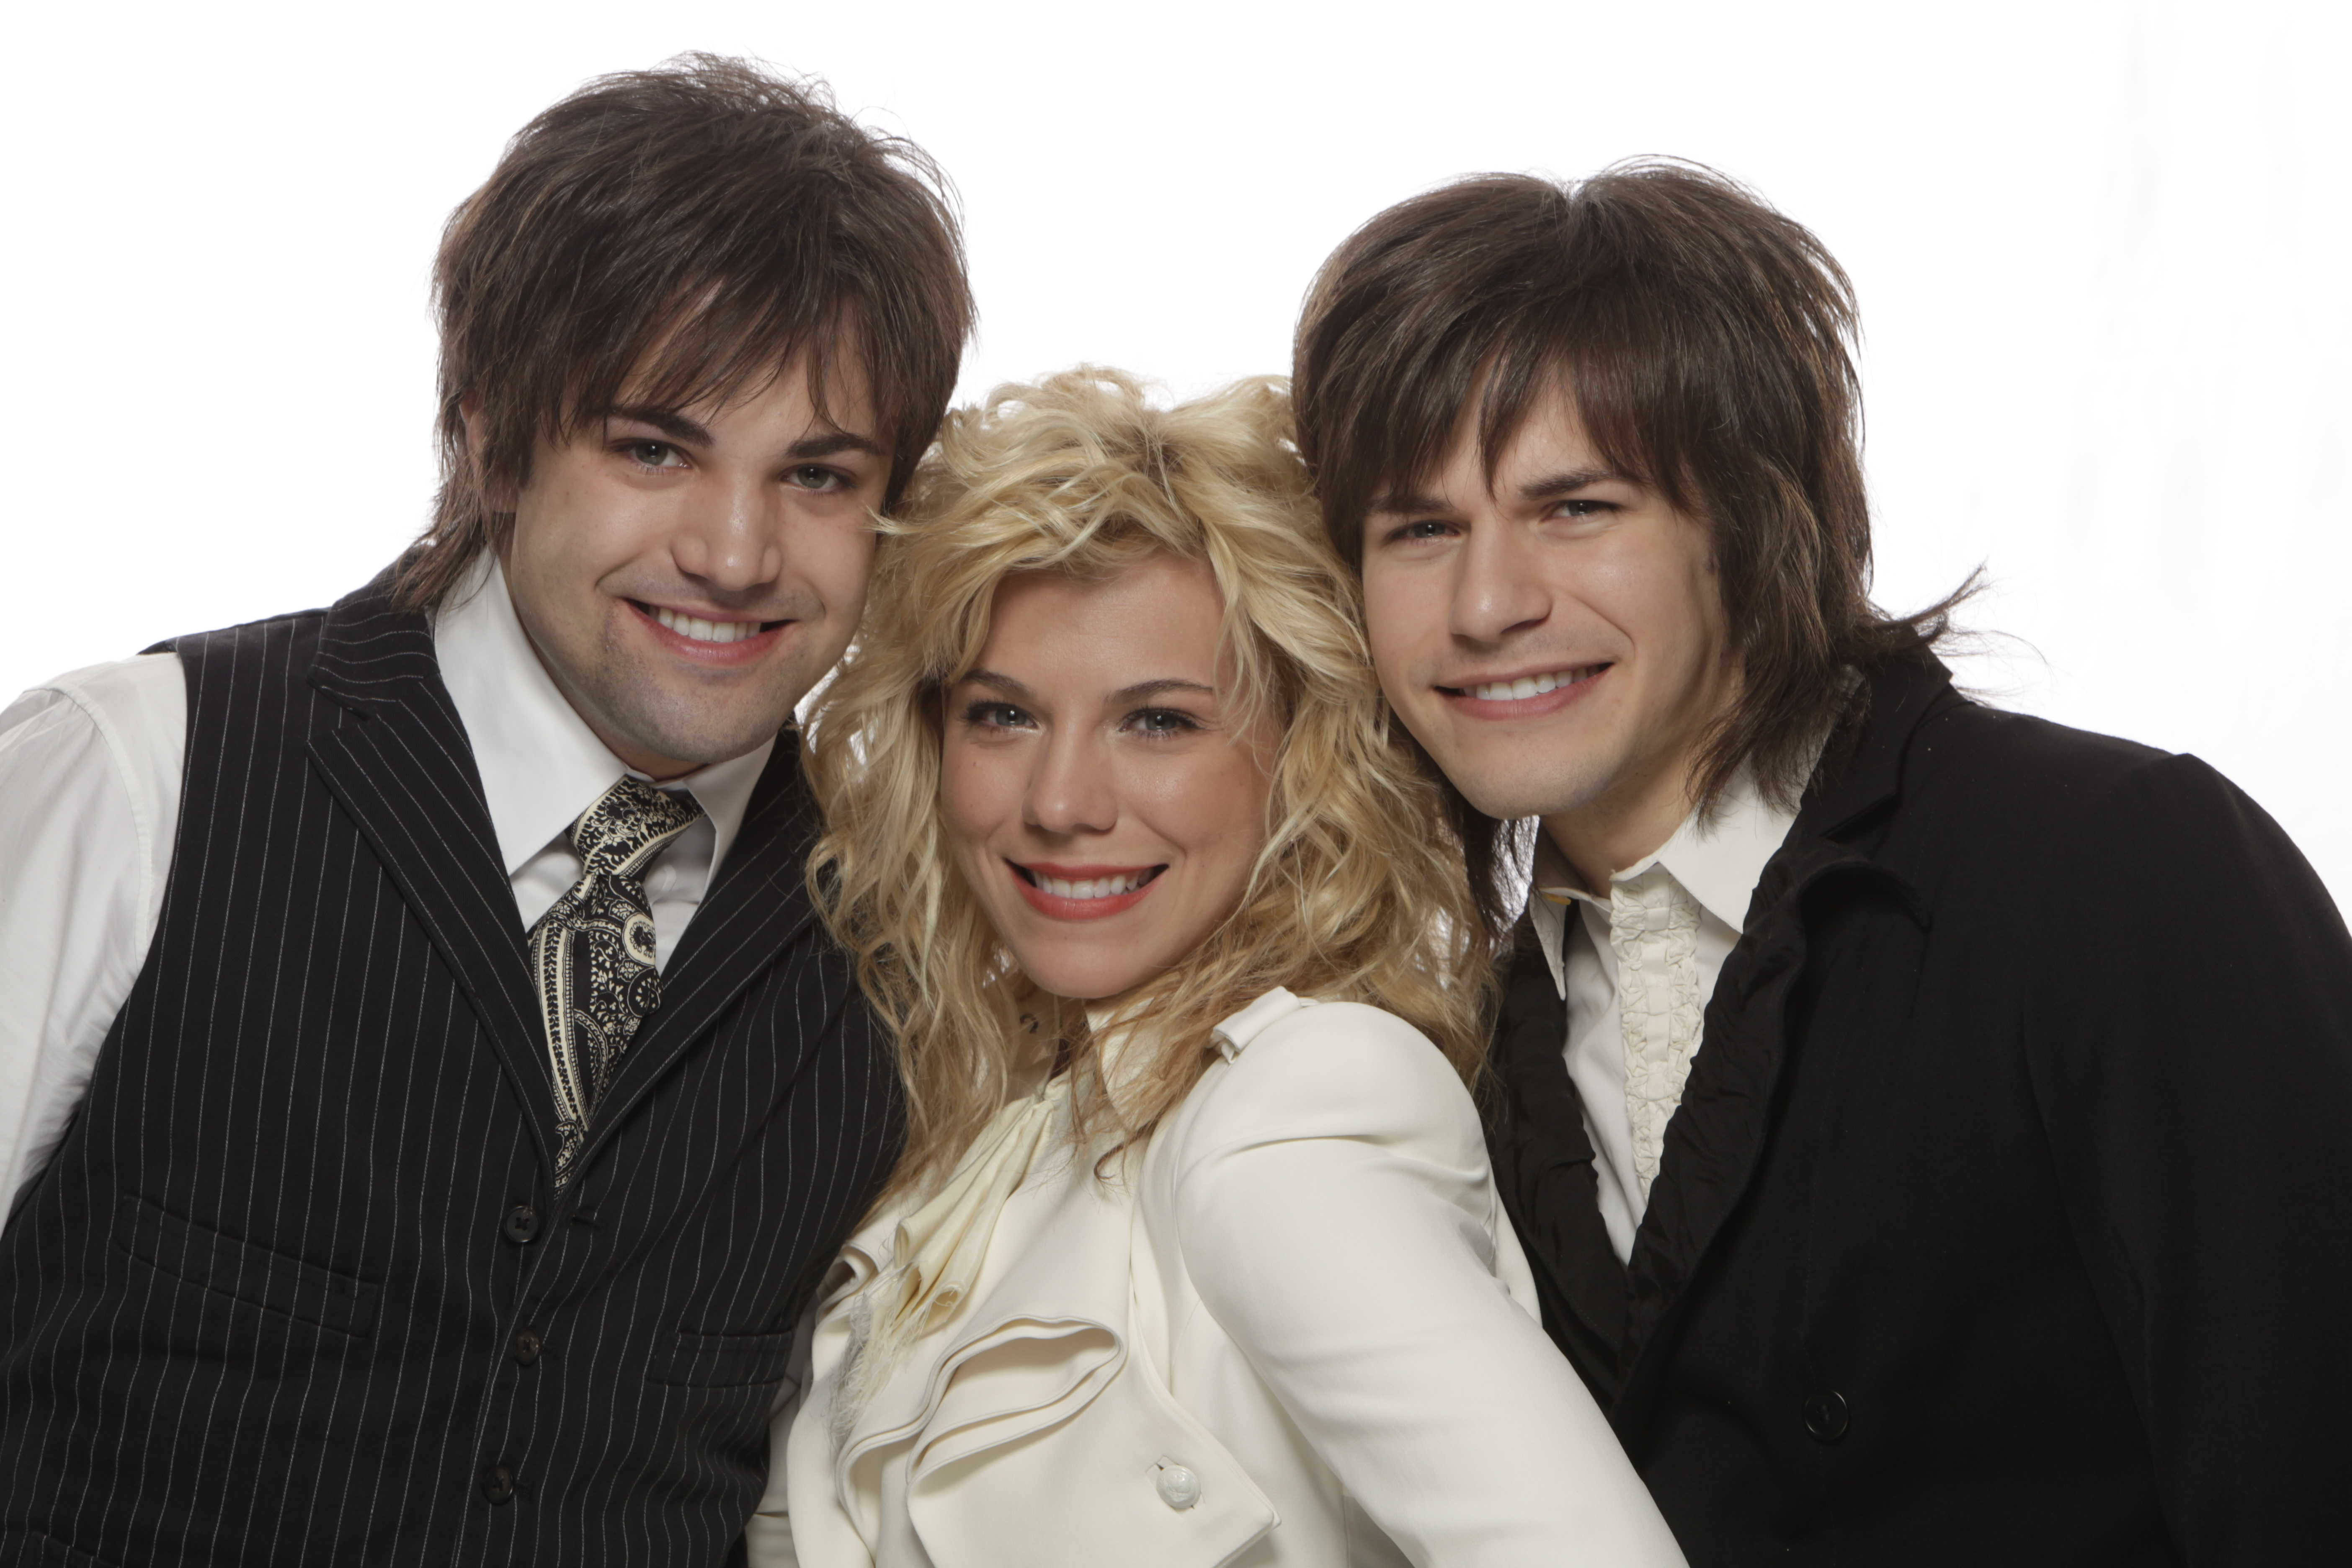 The Band Perry scheduled to perform on the 47th annual ACM Awards